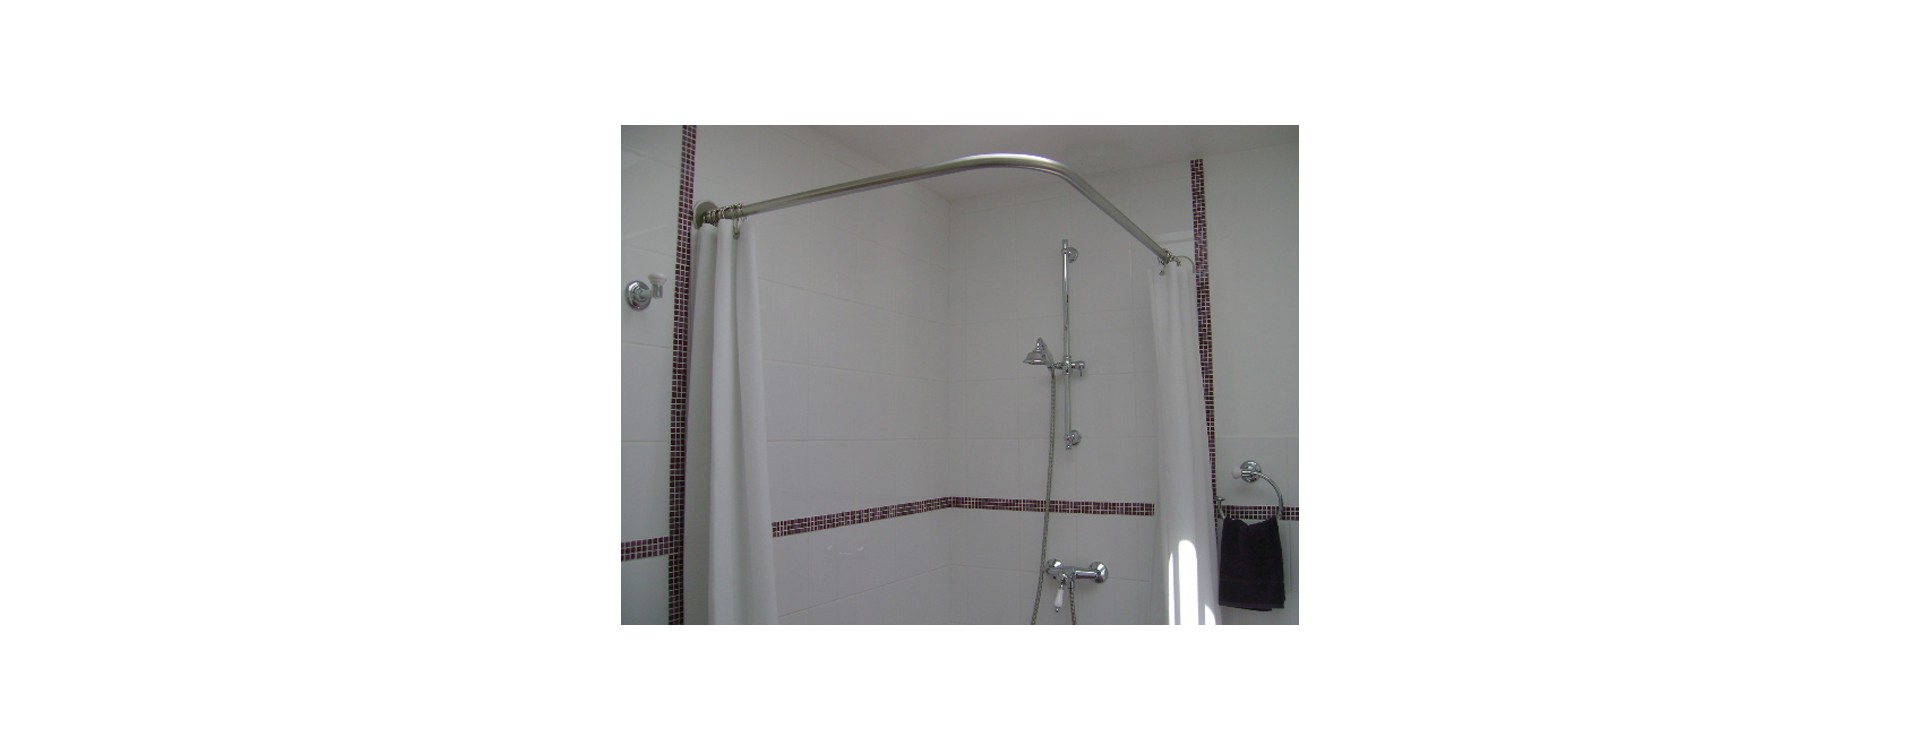 Tringle rideau de douche galbobain sur mesure pour douche for Photos de douche italienne